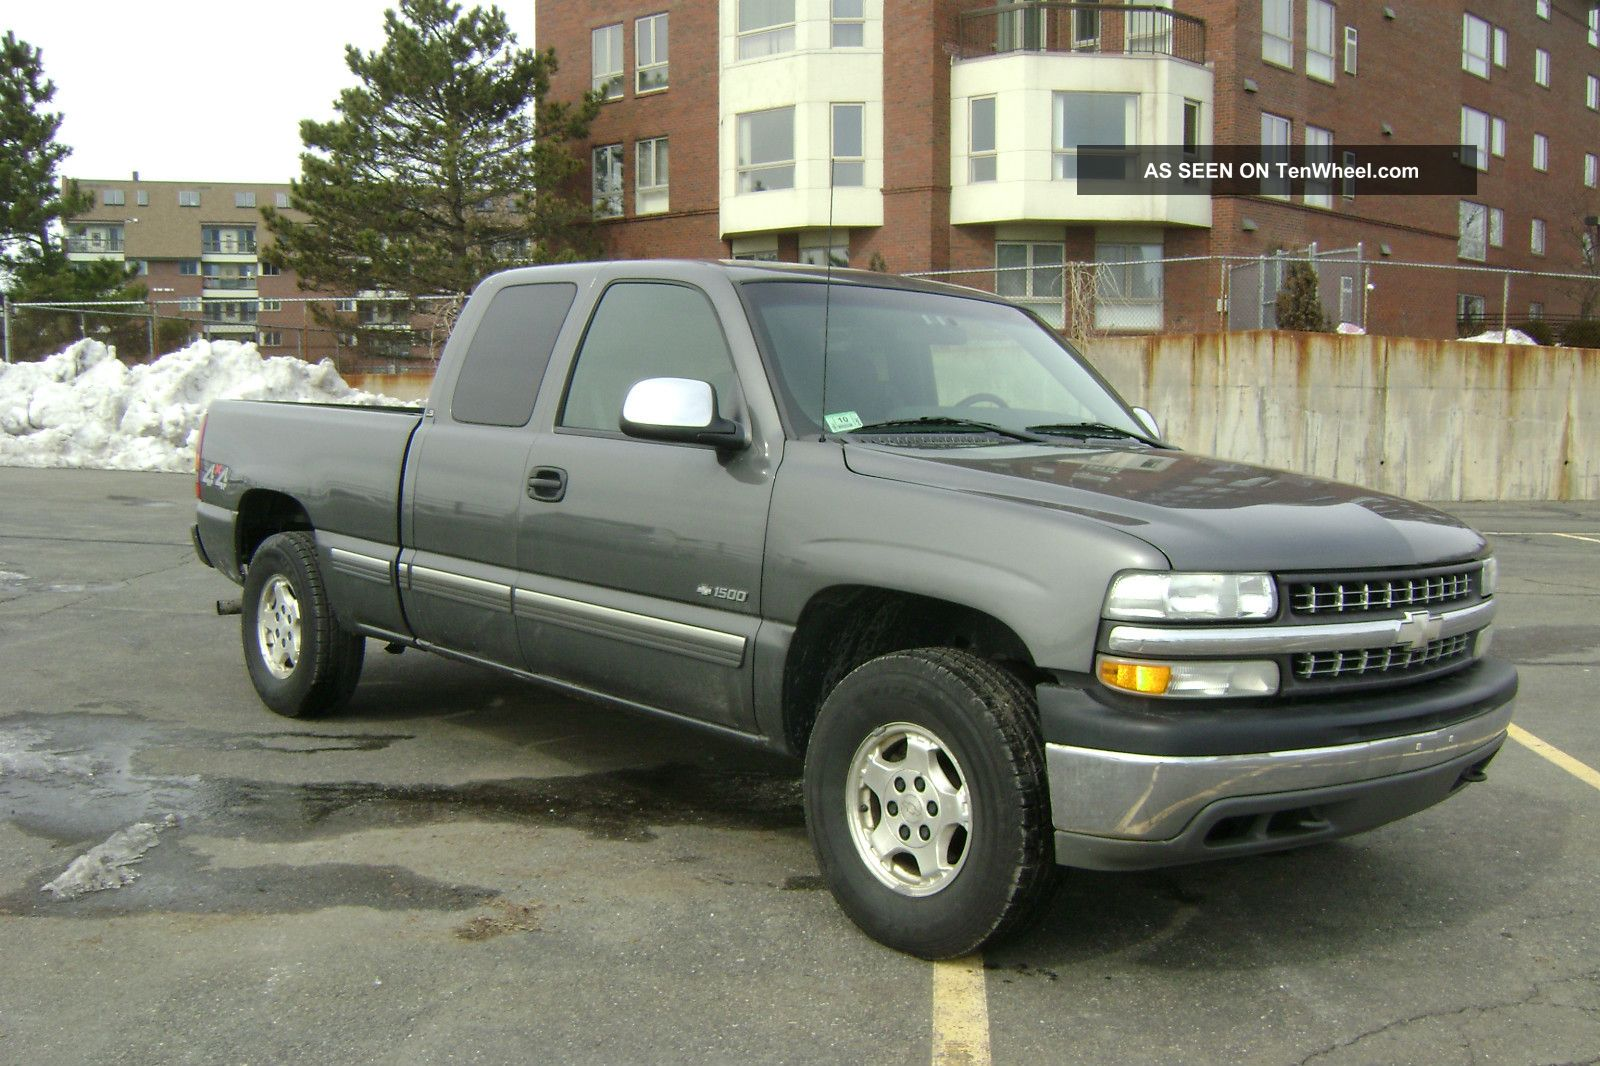 2002 chevrolet chevy silverado 1500 ls ext cab pickup auto v8 4x4. Black Bedroom Furniture Sets. Home Design Ideas